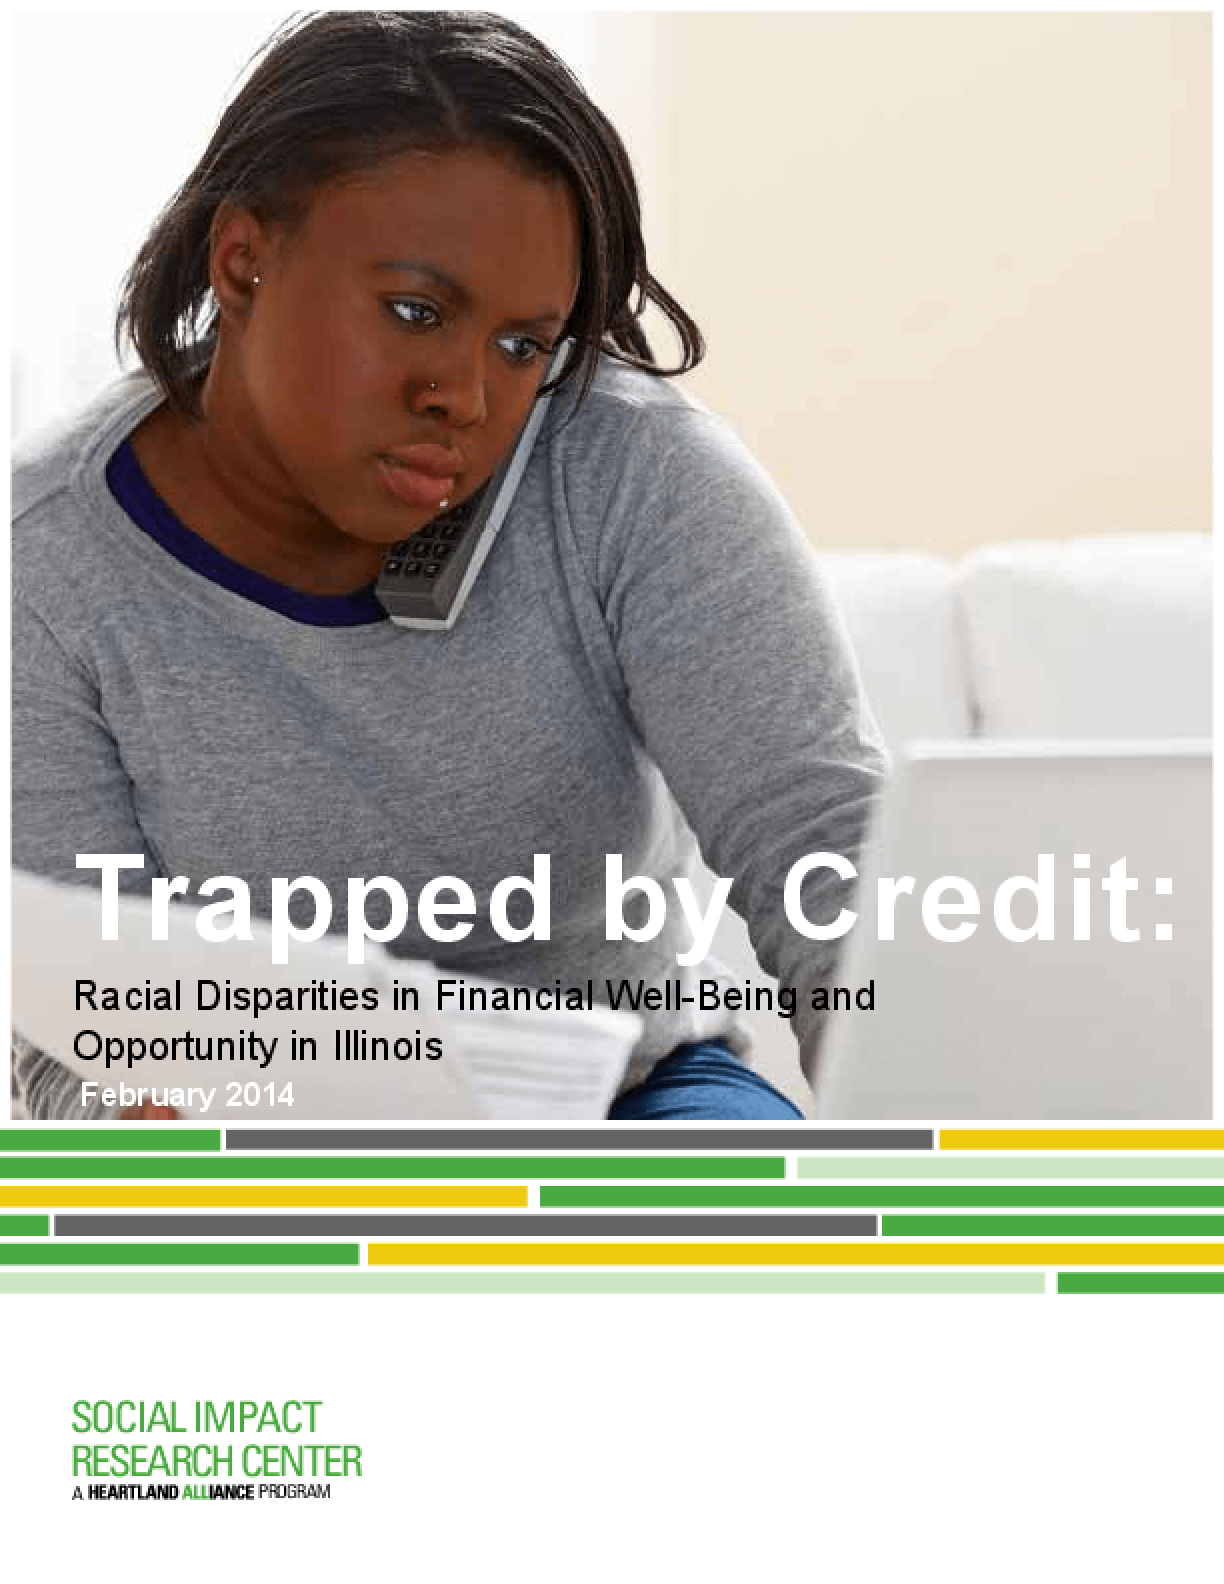 Trapped by Credit: Racial Disparities in Financial Well-Being and Opportunity in Illinois